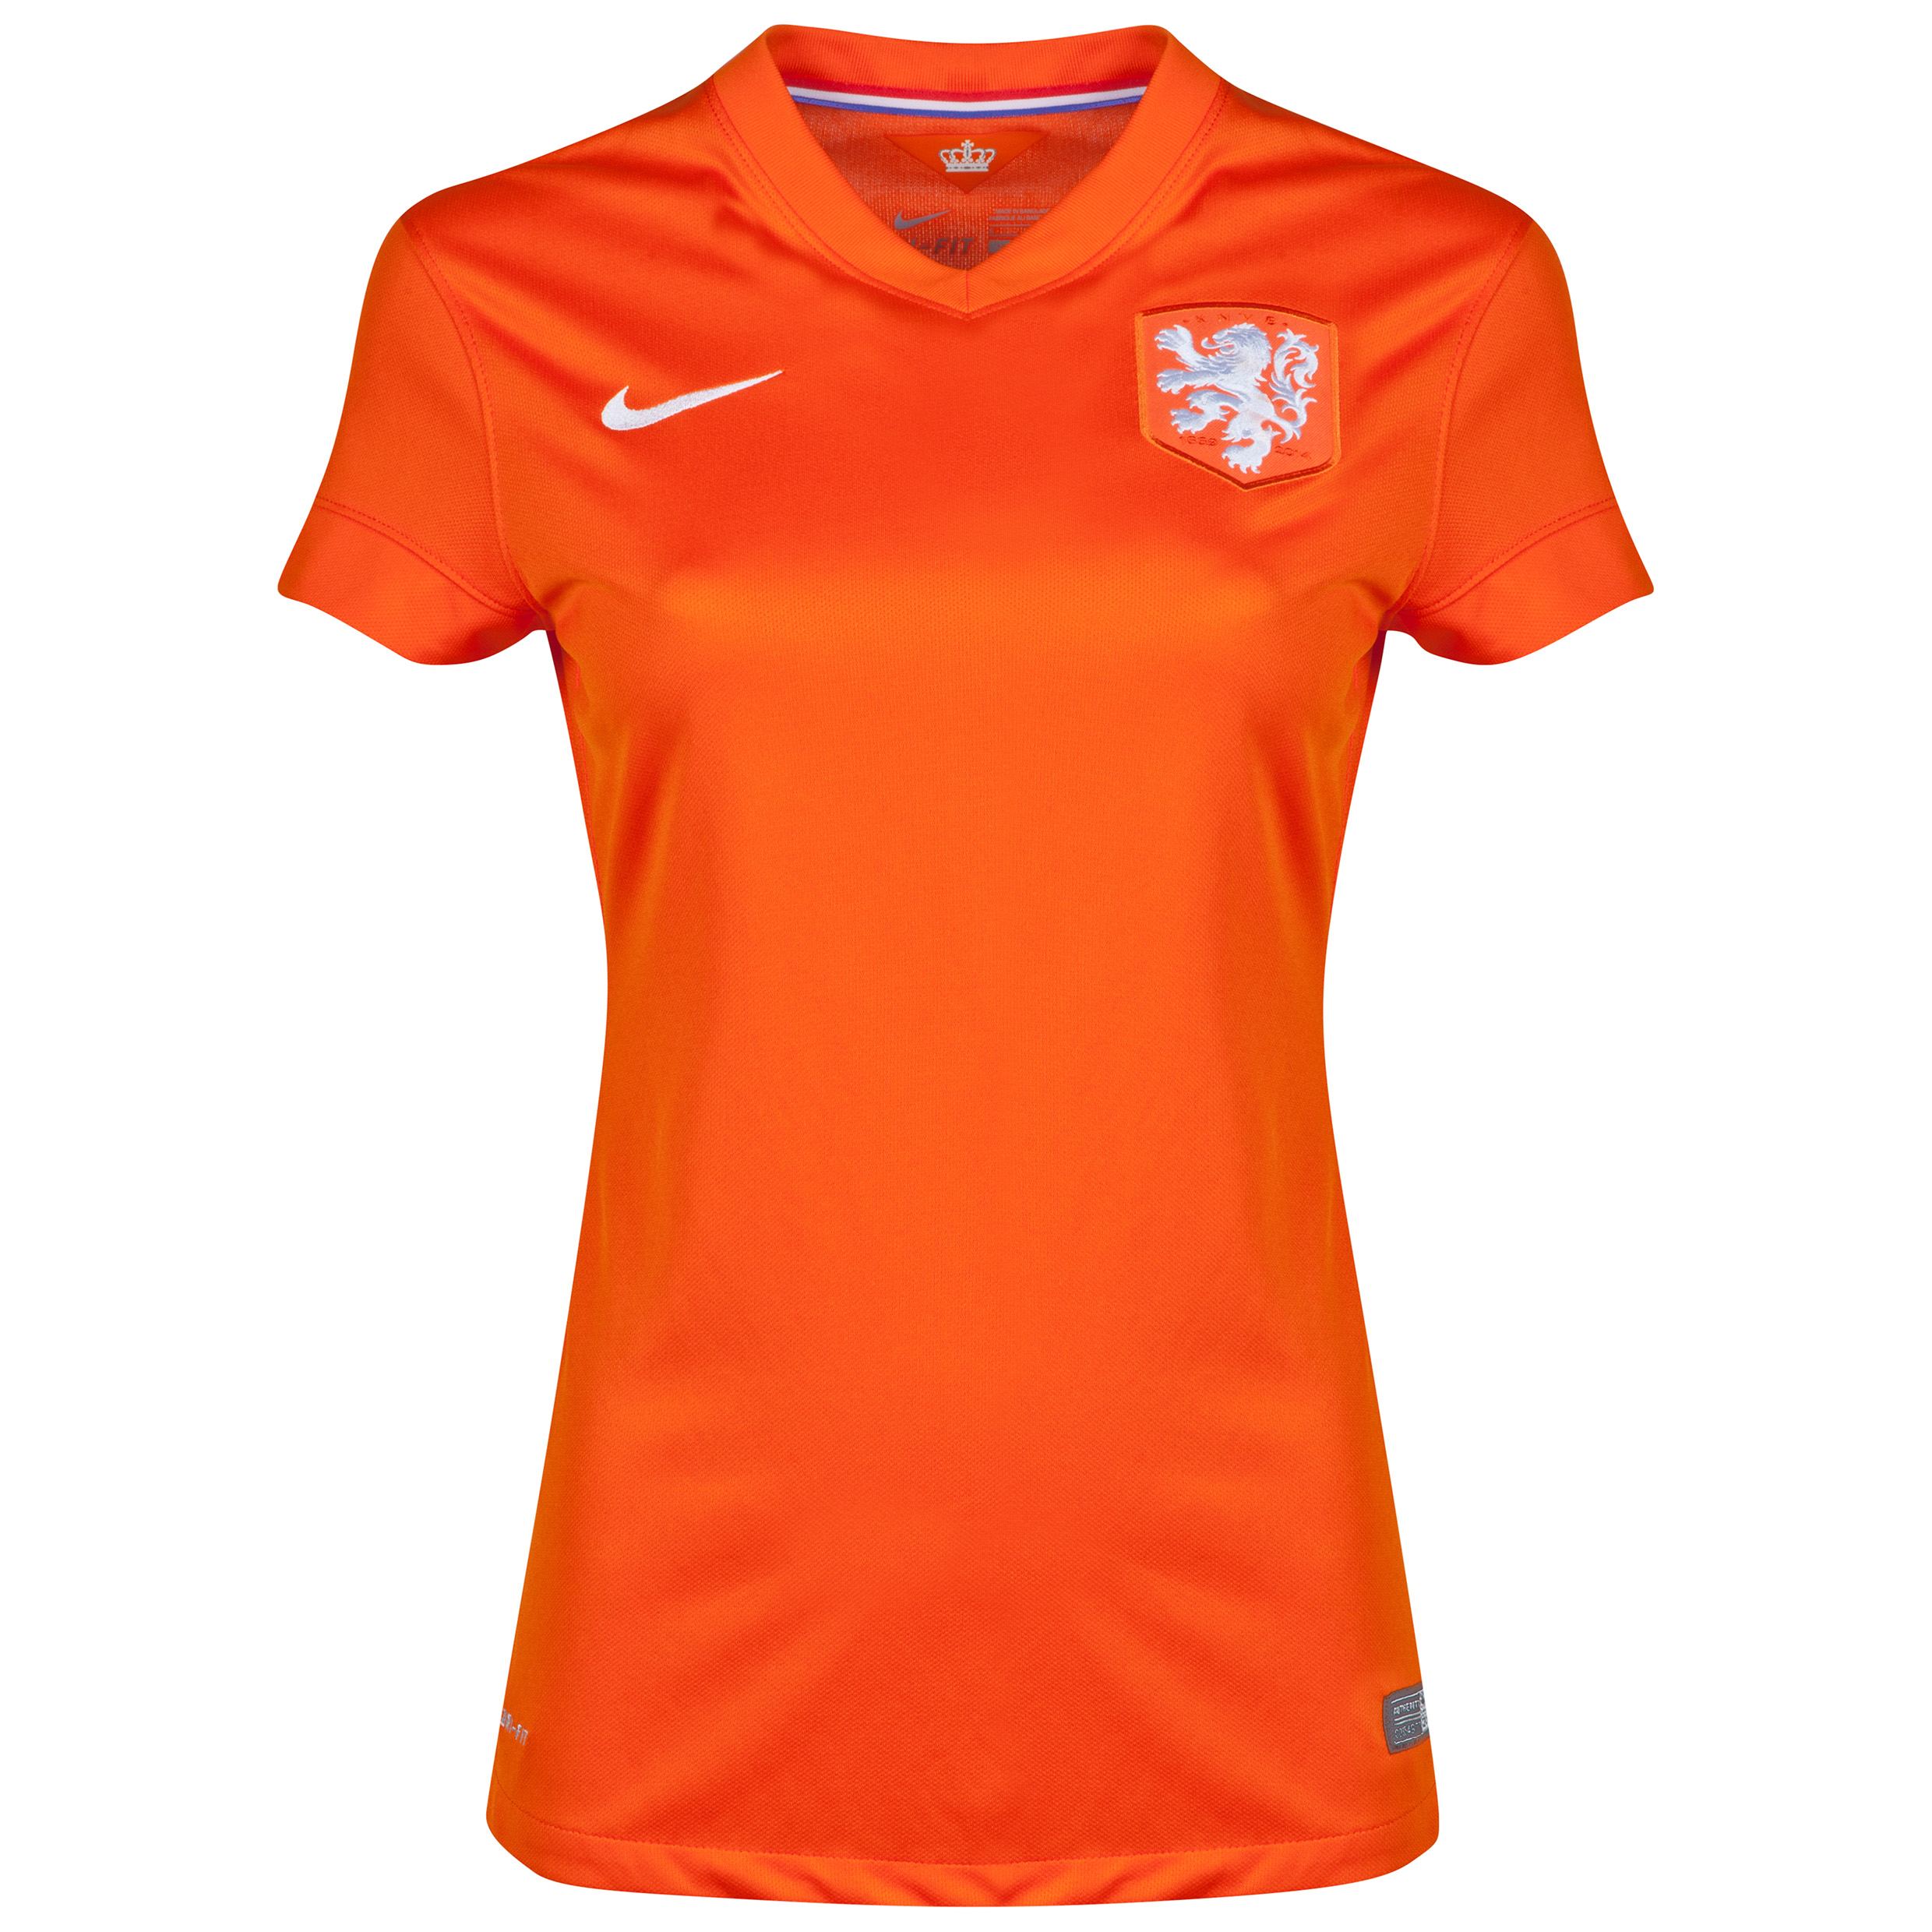 Netherlands Home Shirt 2014/15 - Womens Orange